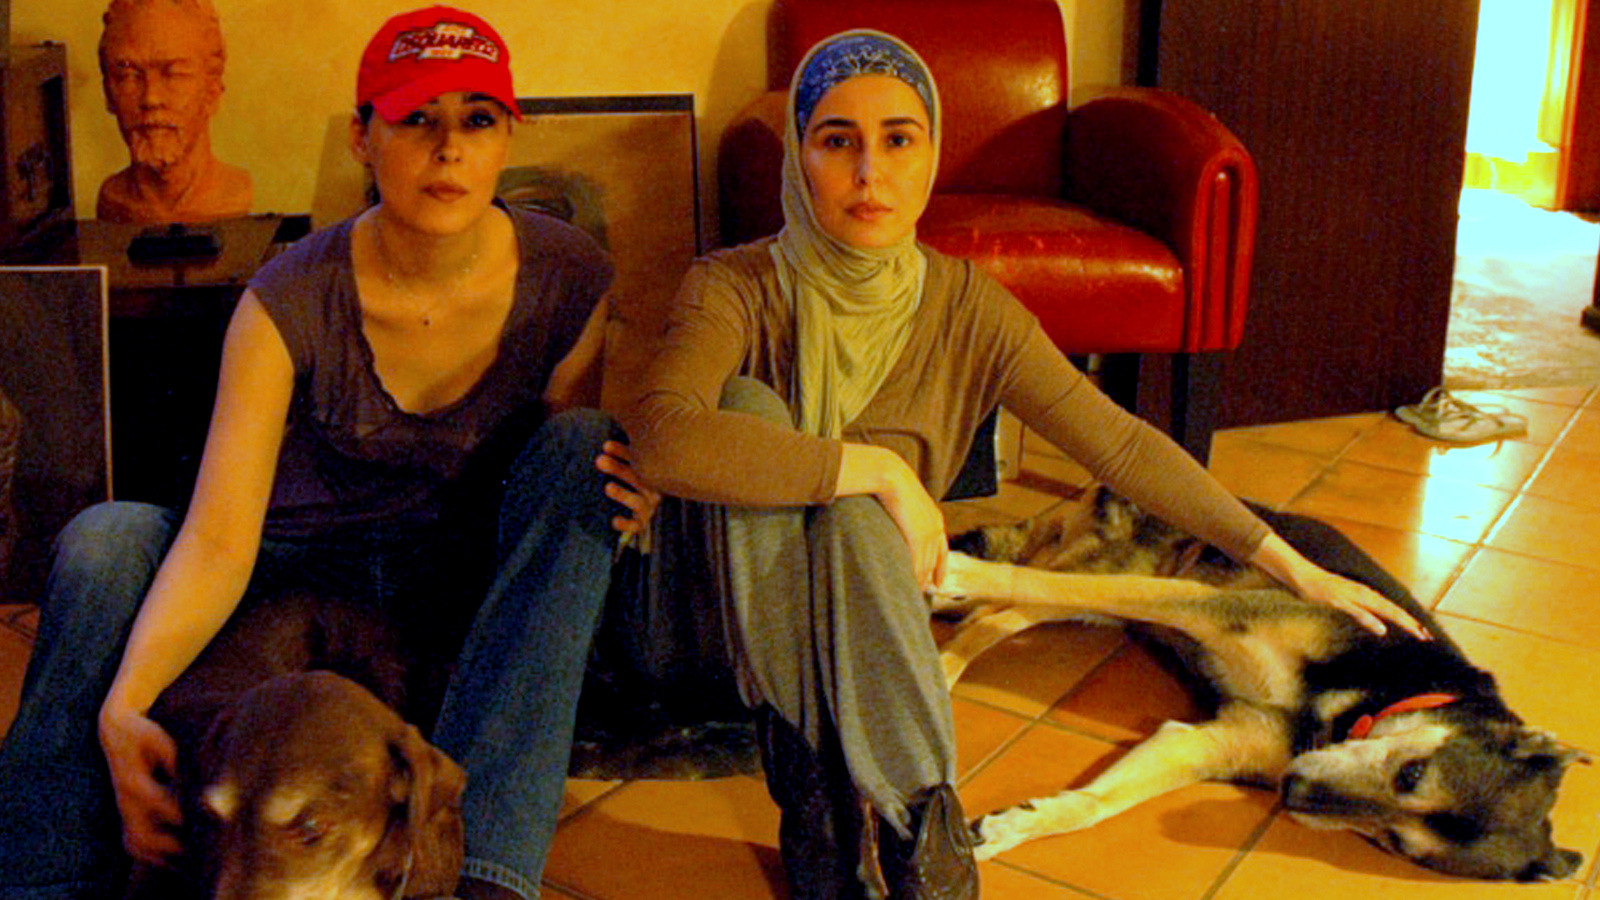 Princesses daughters of King Abdullah of Sauda Arabia, taken on March 23, 2014. Sahar is the oldest of the four, she's the one with head cover. Red hat is Princess Jawaher.